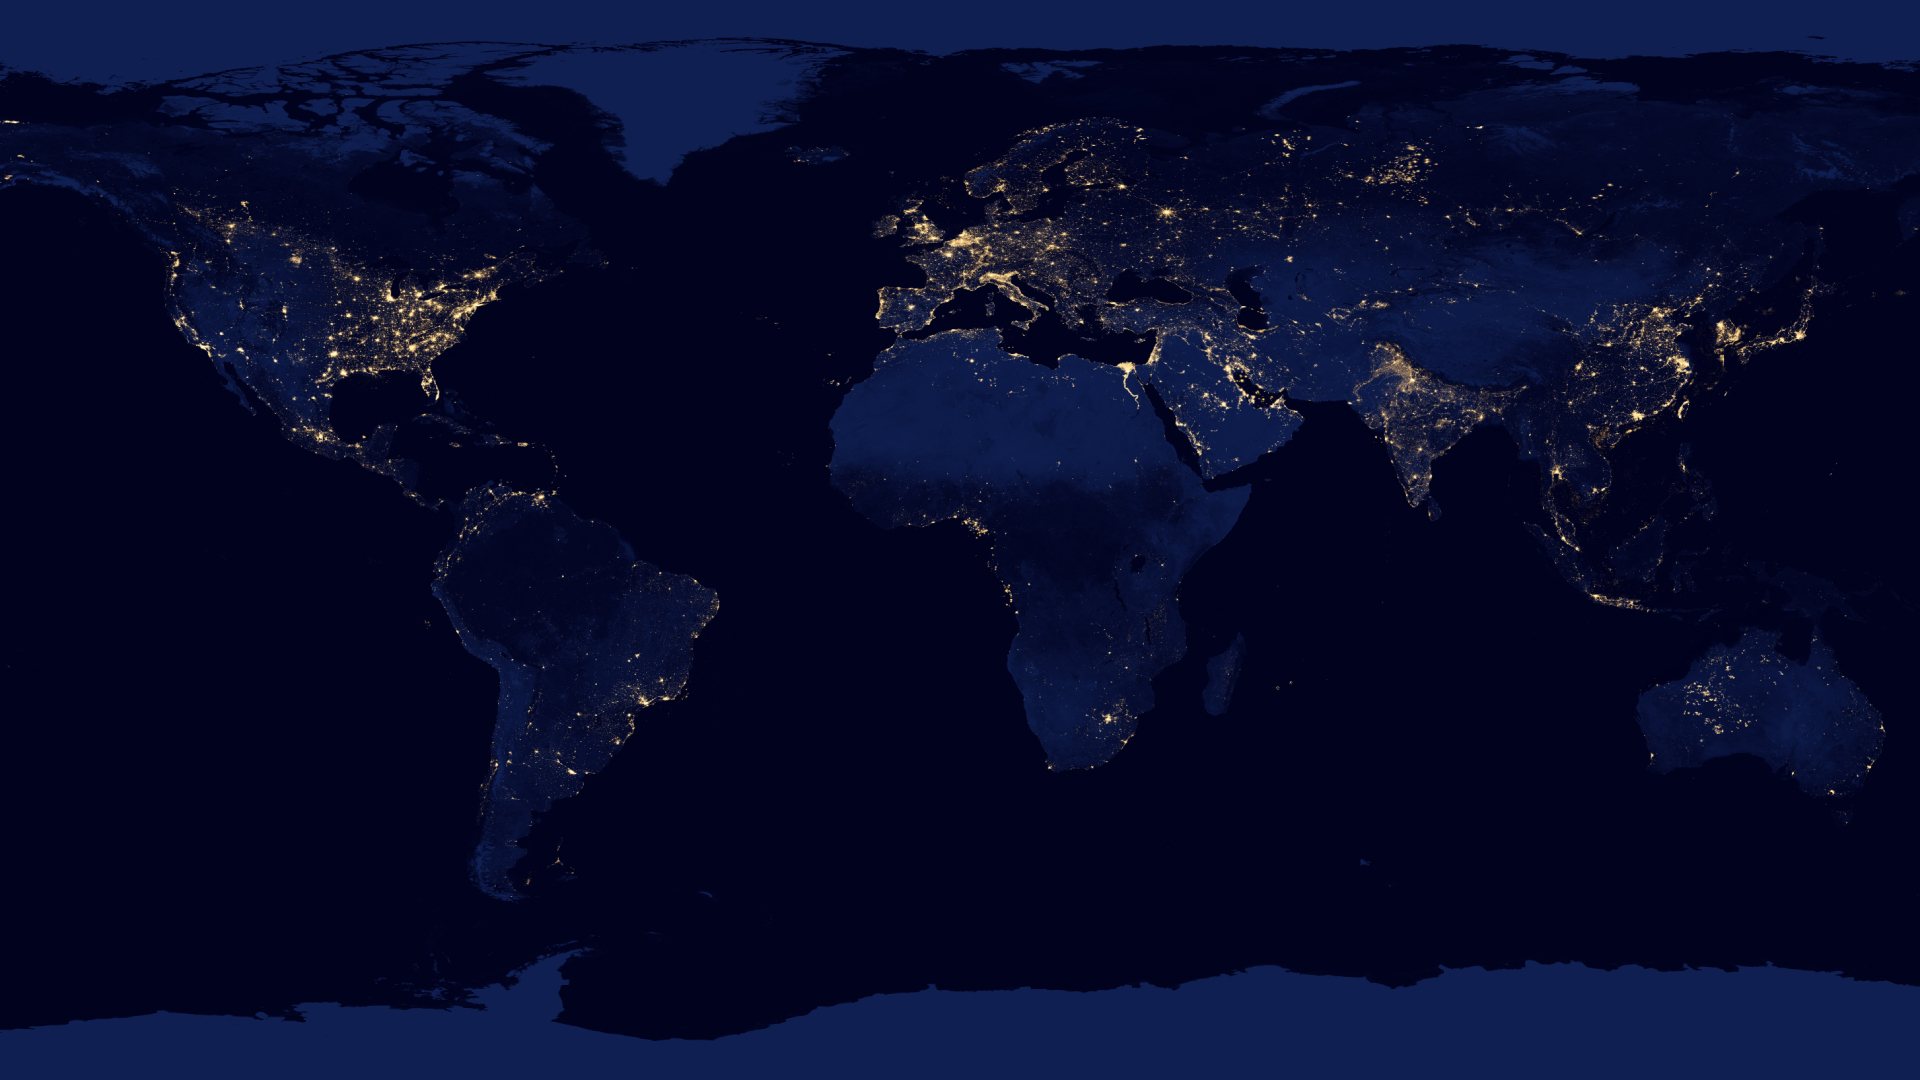 The earth at night NASA Earth Observatory